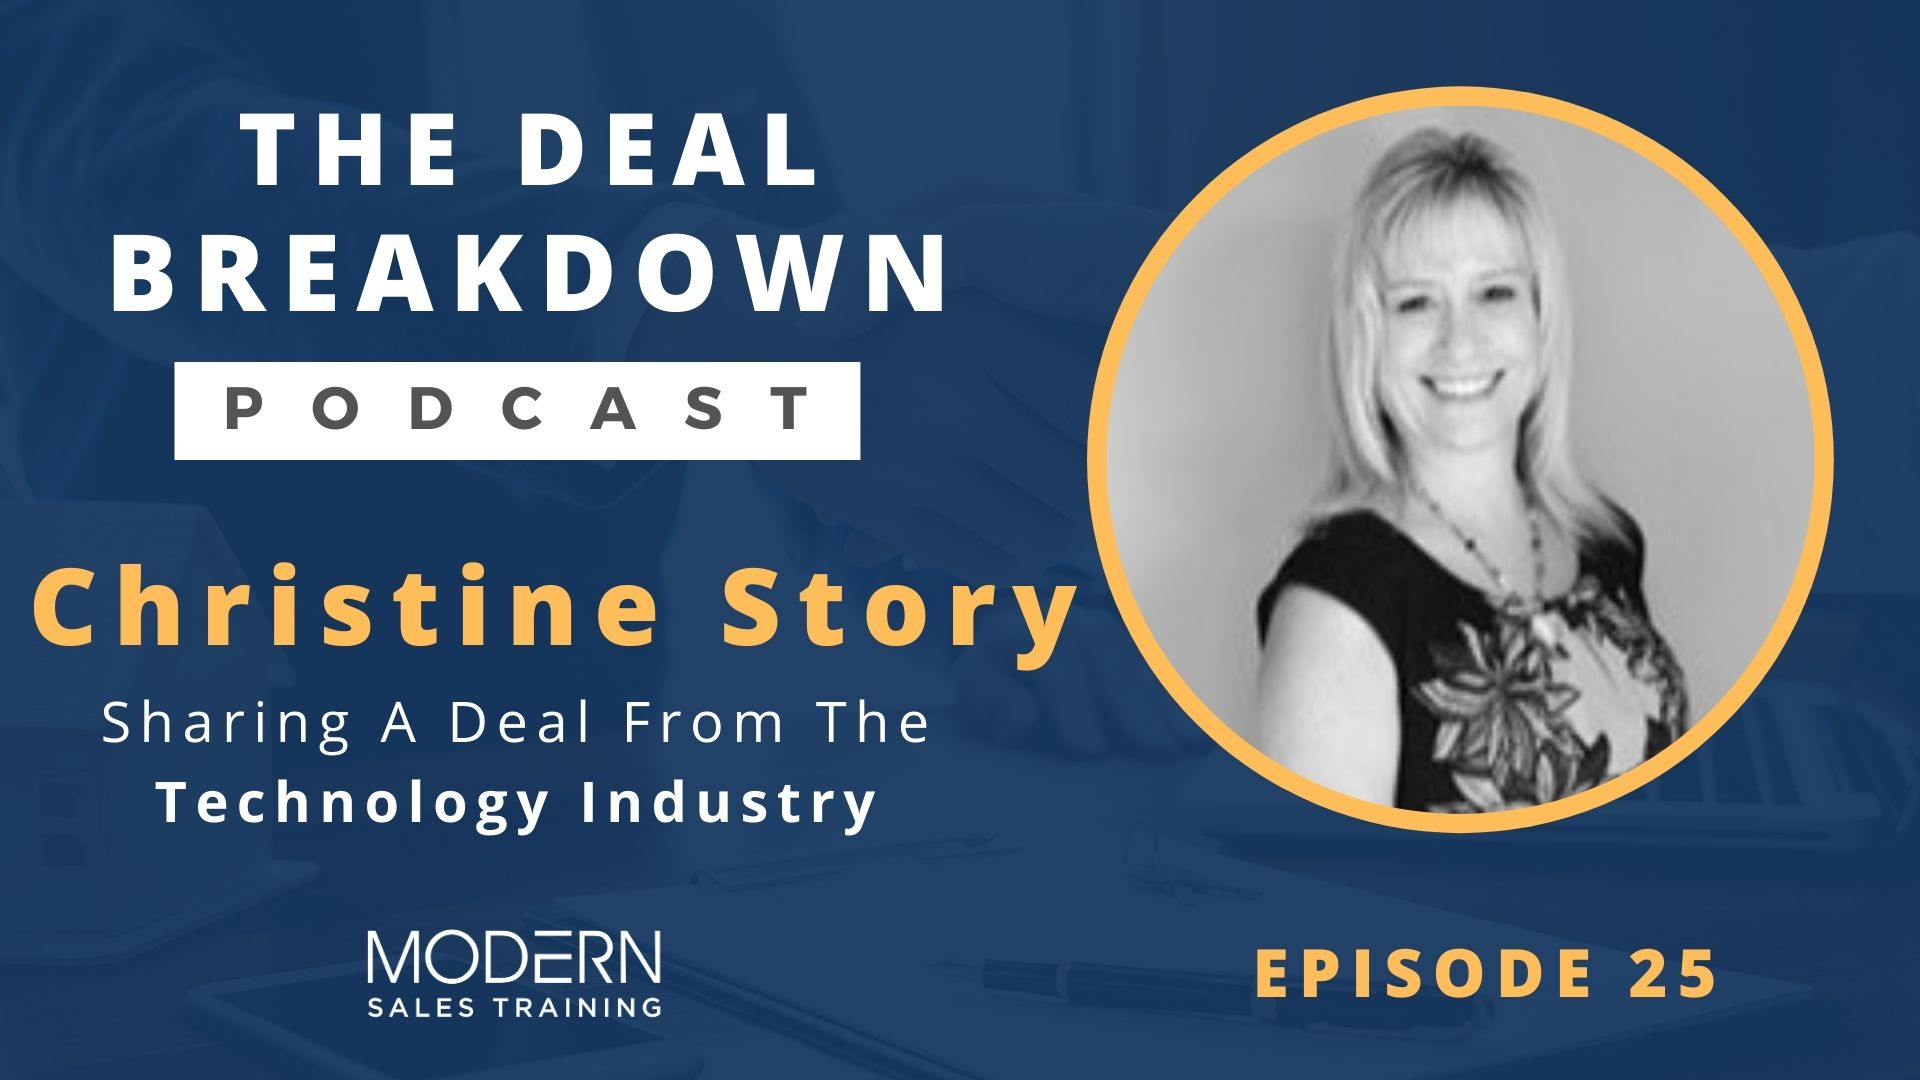 The-Deal-Breakdown-Podcast-Modern-Sales-Training-Christine-Story